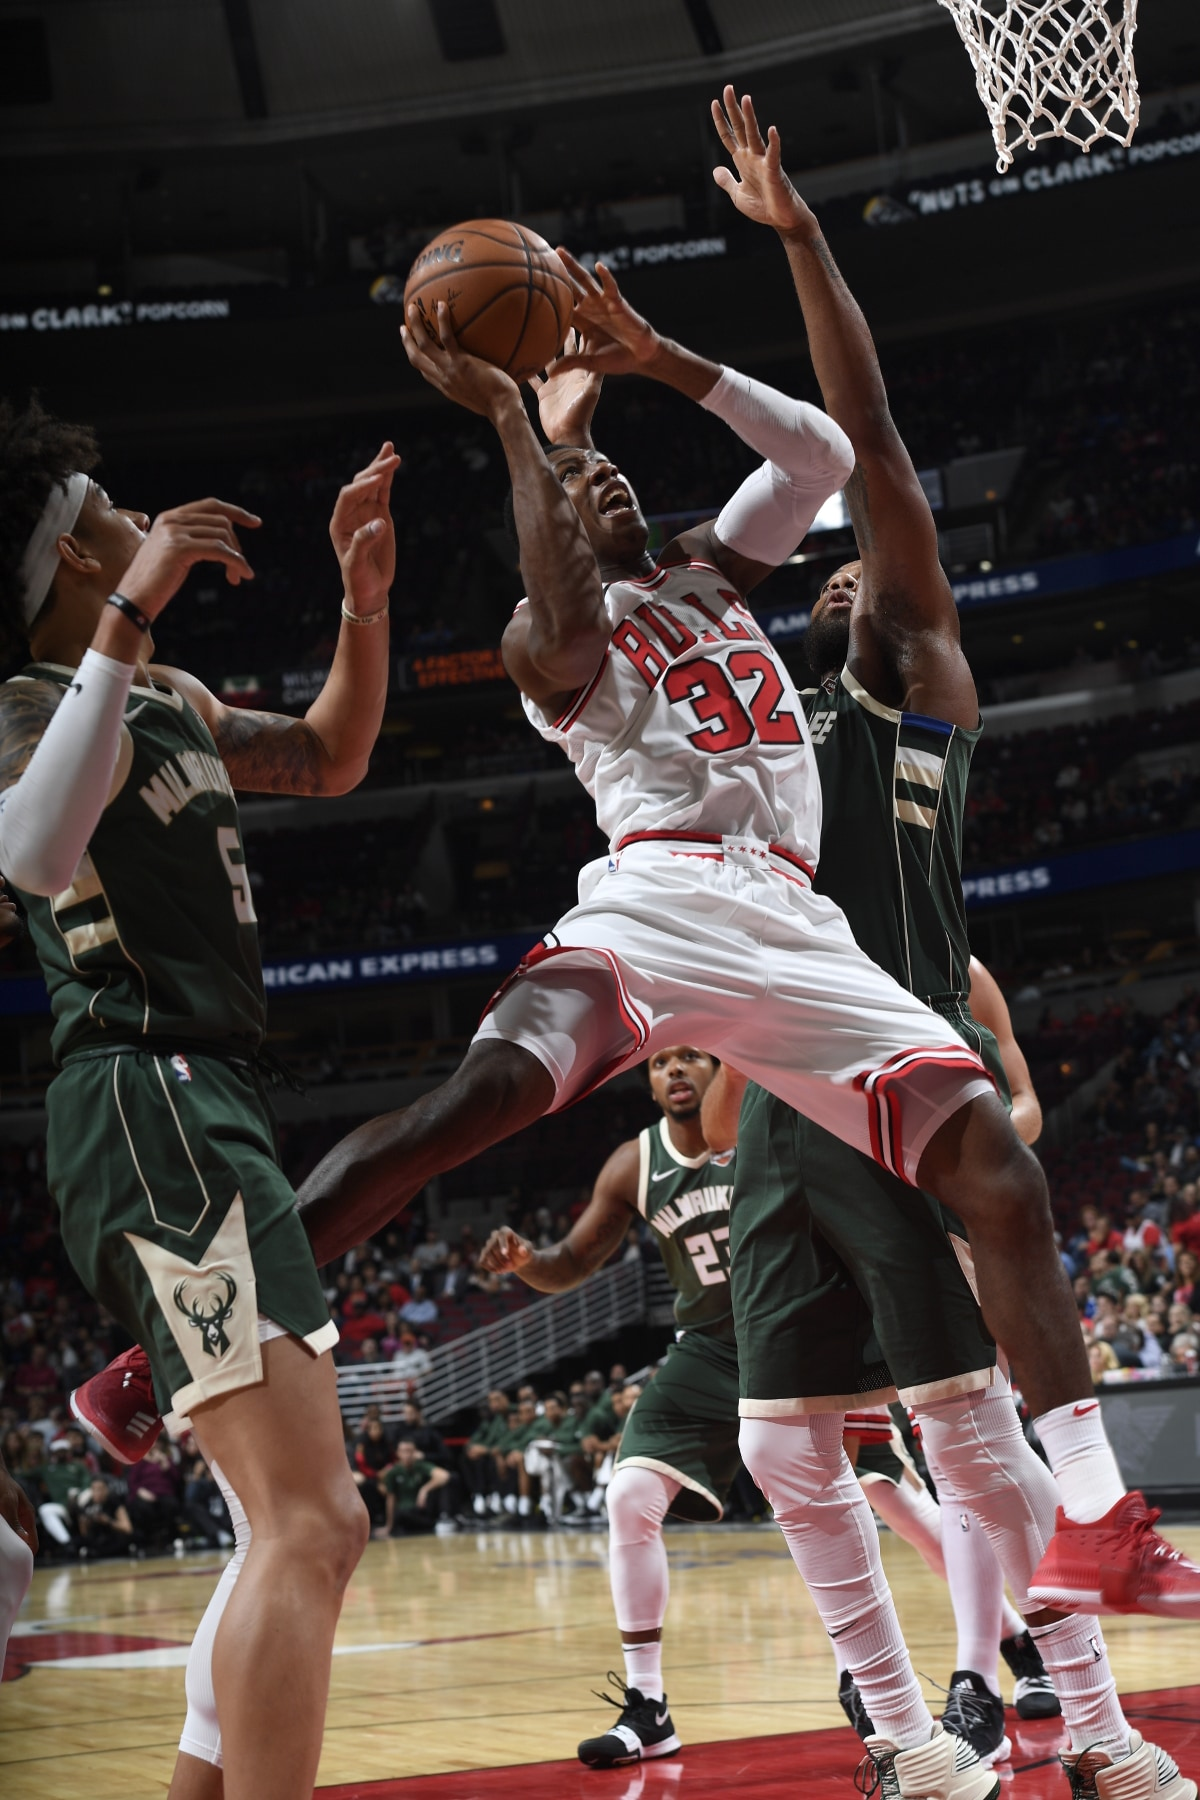 Kris Dunn of the Chicago Bulls attempting a layup against players of the Milwaukee Bucks, October 6, 2017 at the United Center.